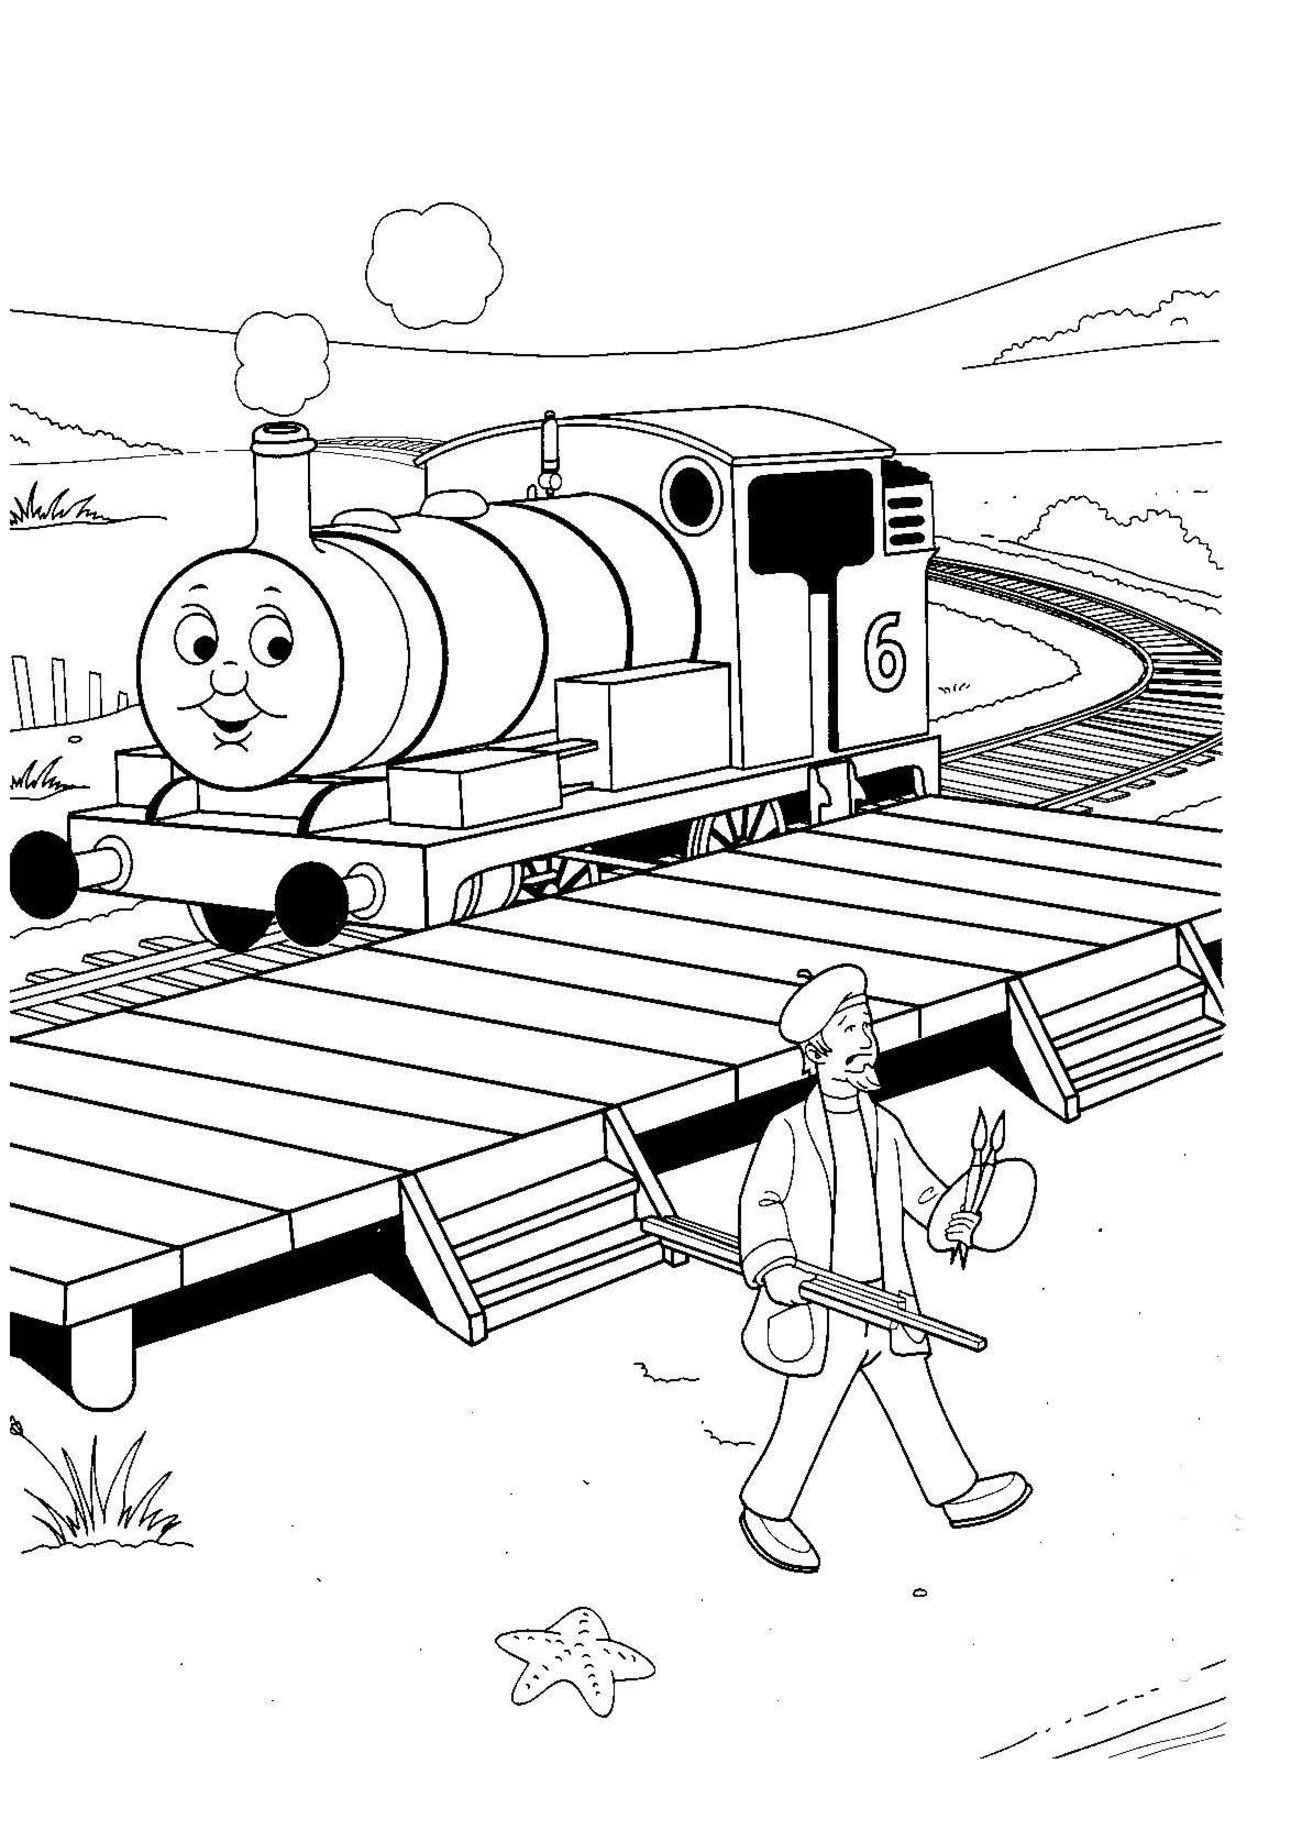 Free Printable Train Coloring Pages For Kids | Thomas the train bday ...